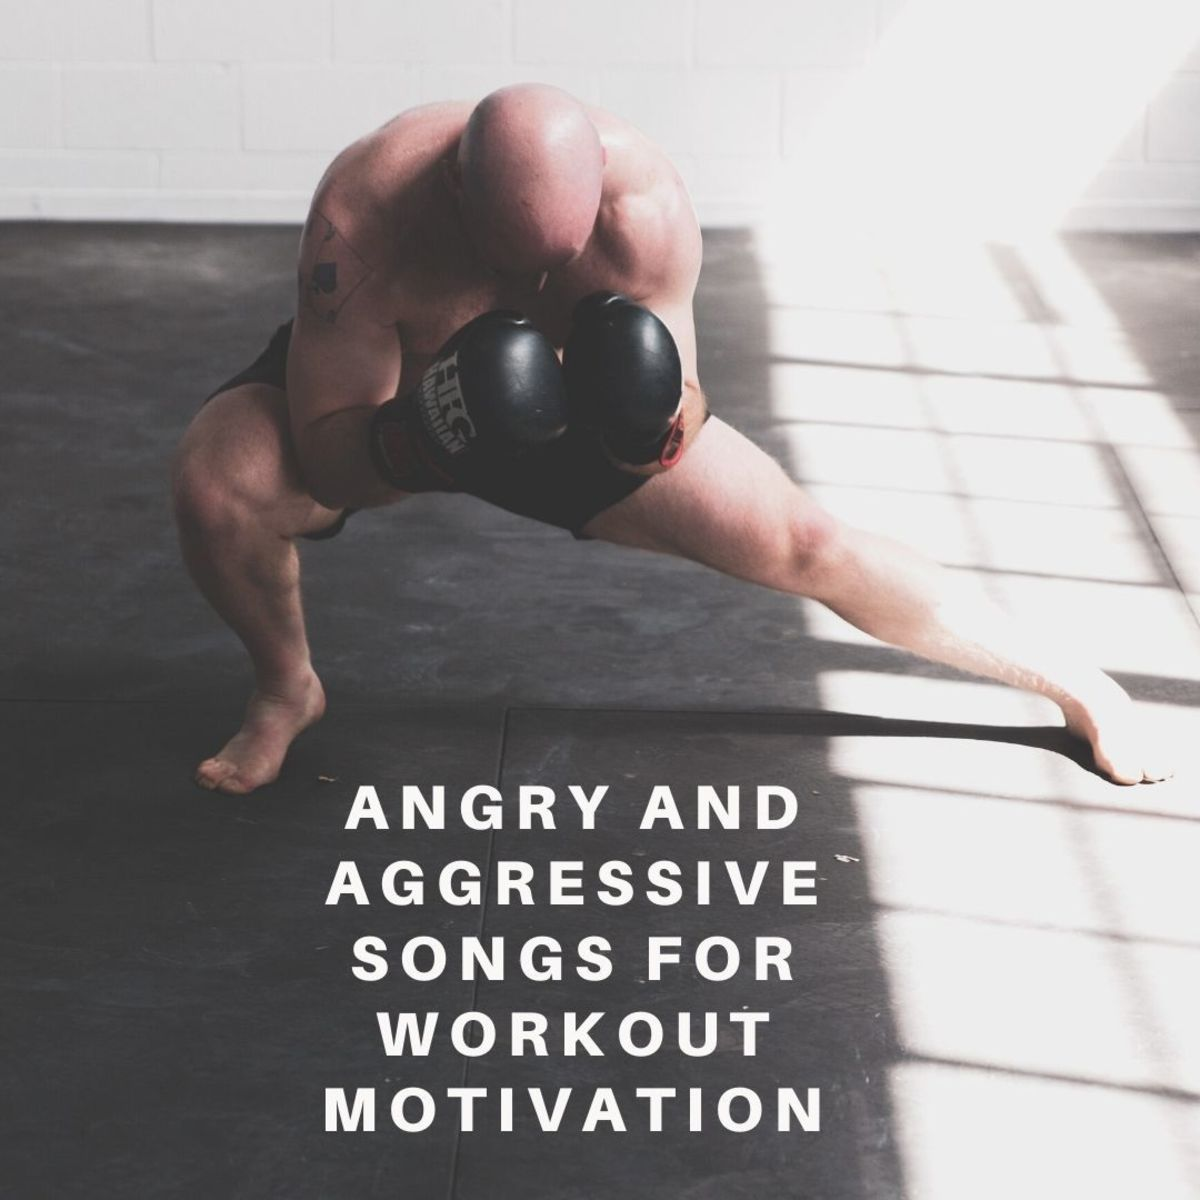 66 Angry and Aggressive Songs for Workout and Bodybuilding Motivation